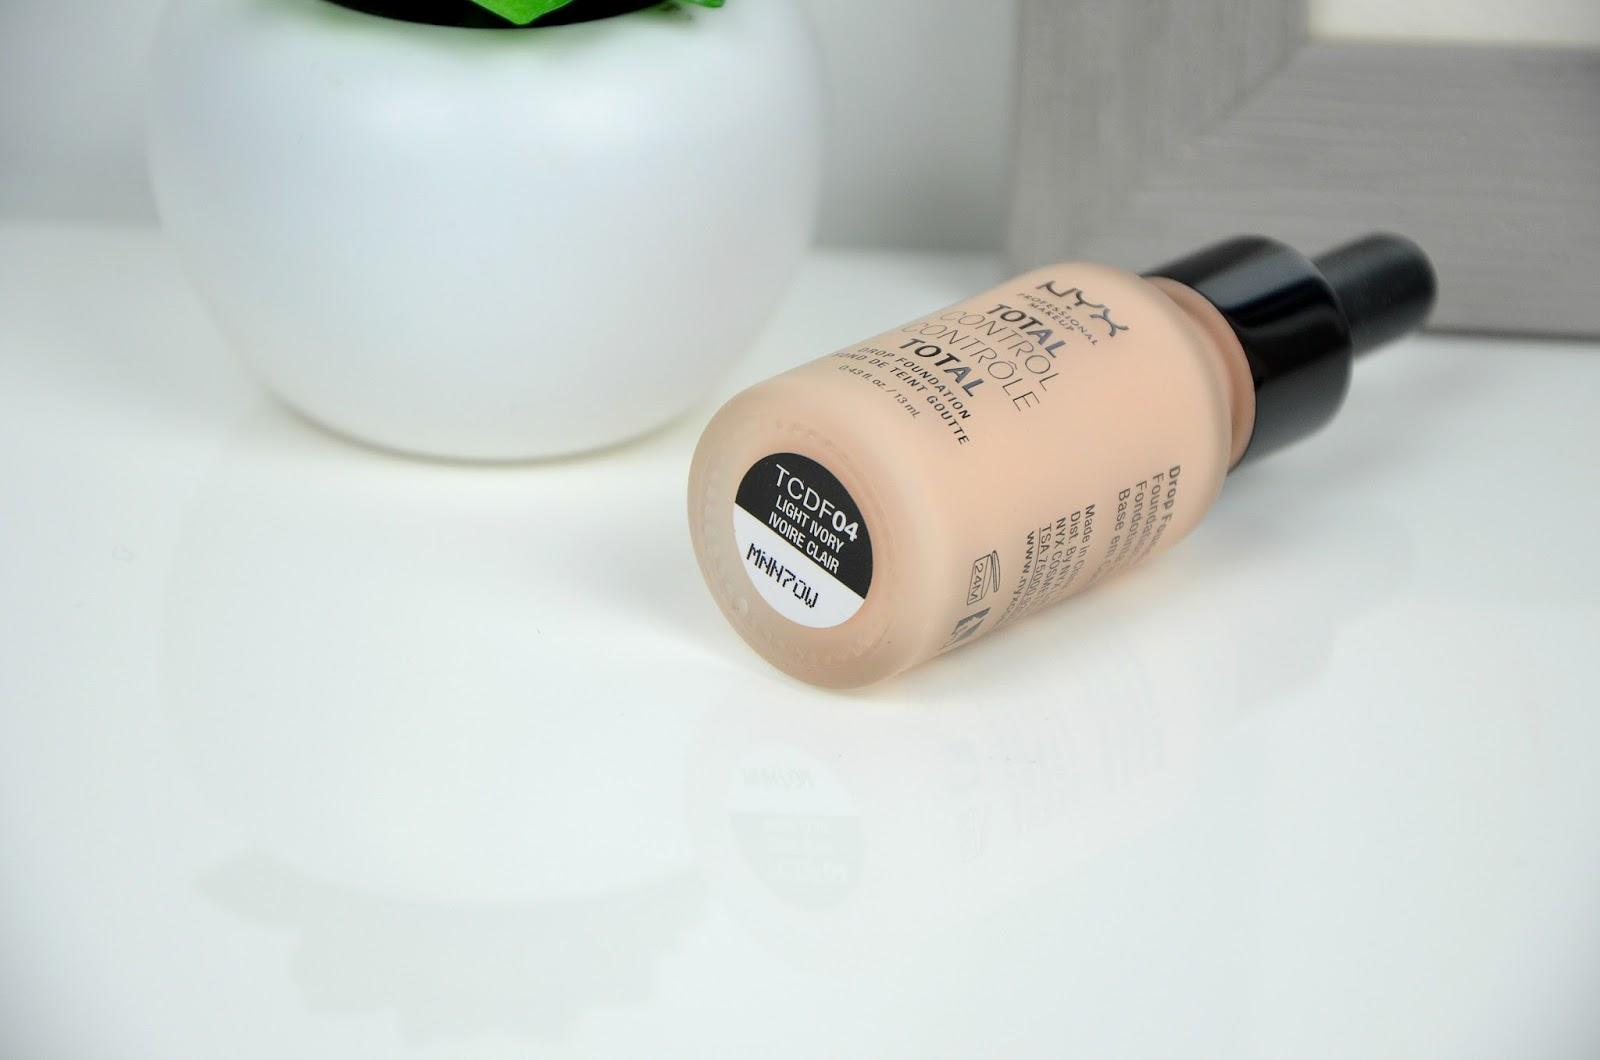 total control foundation fond de teint contrôle total NYX light ivory ivoireclair